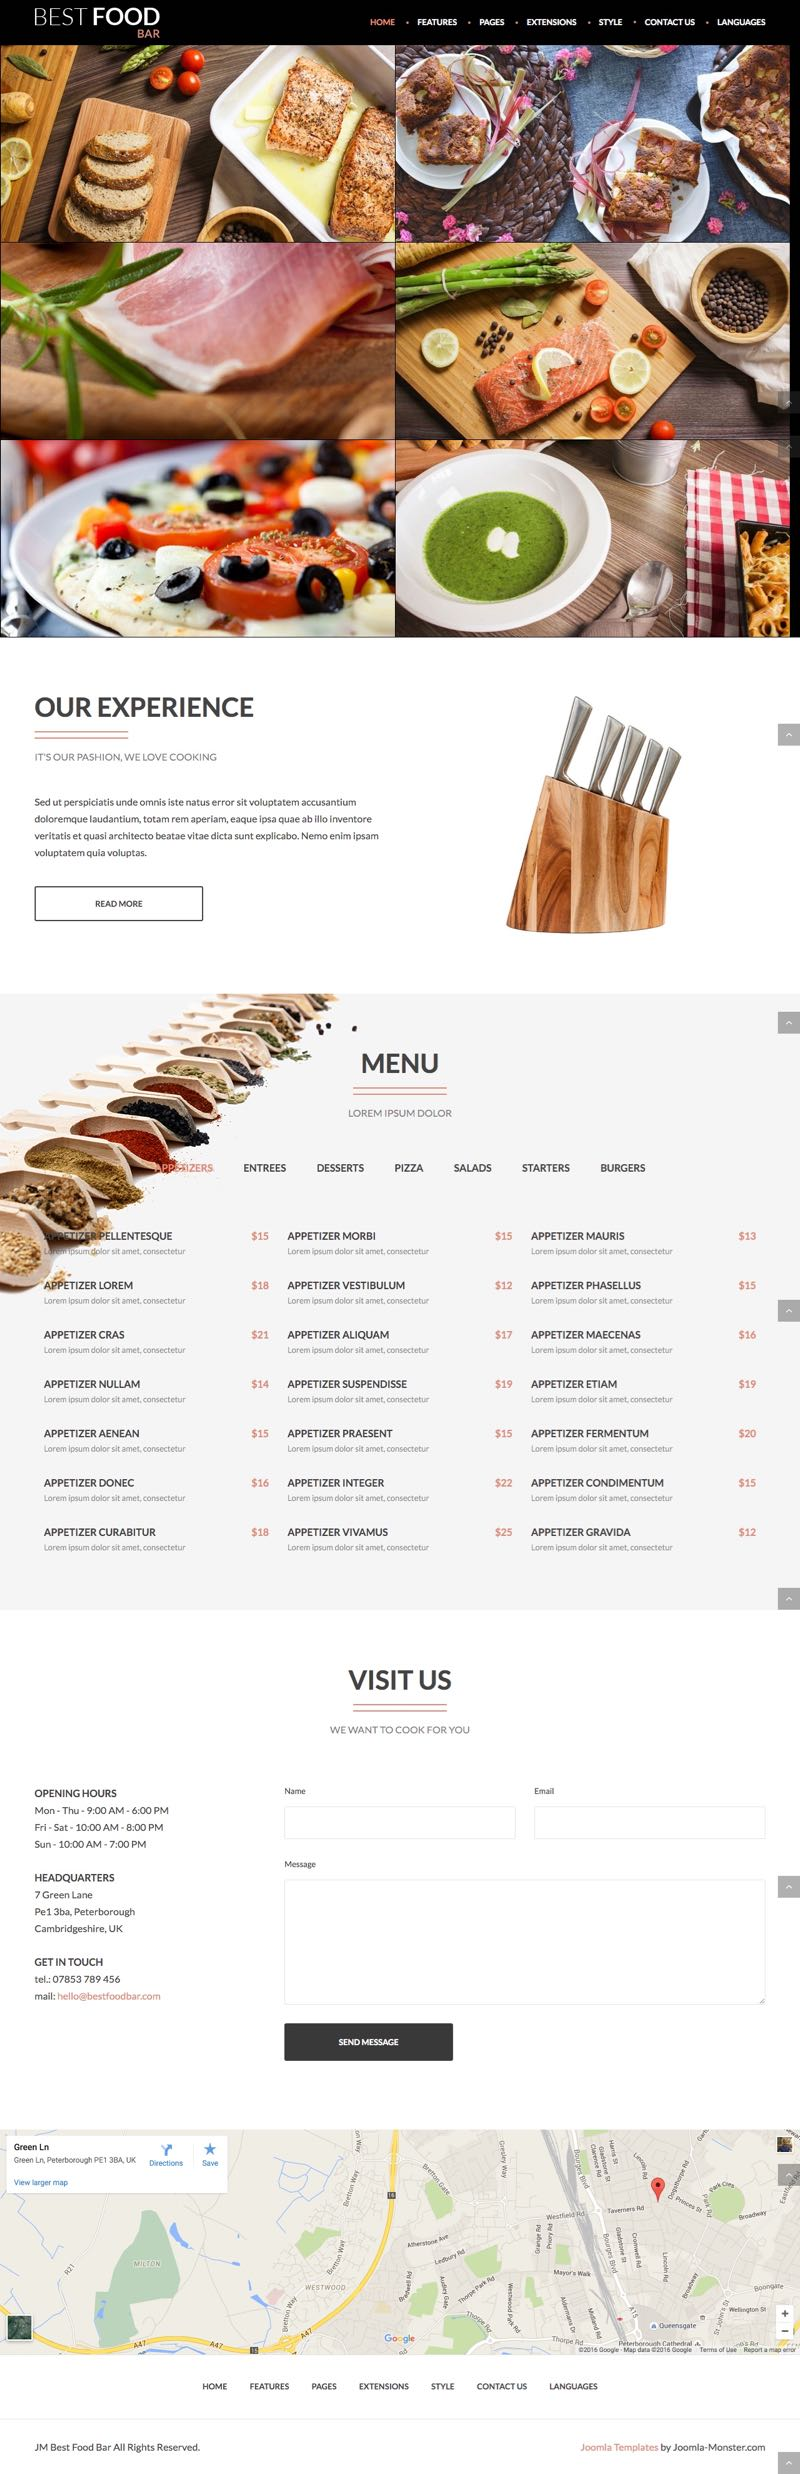 Jm best food bar joomla cooking food recipes template joomla jm best food bar joomla cooking food recipes template forumfinder Images